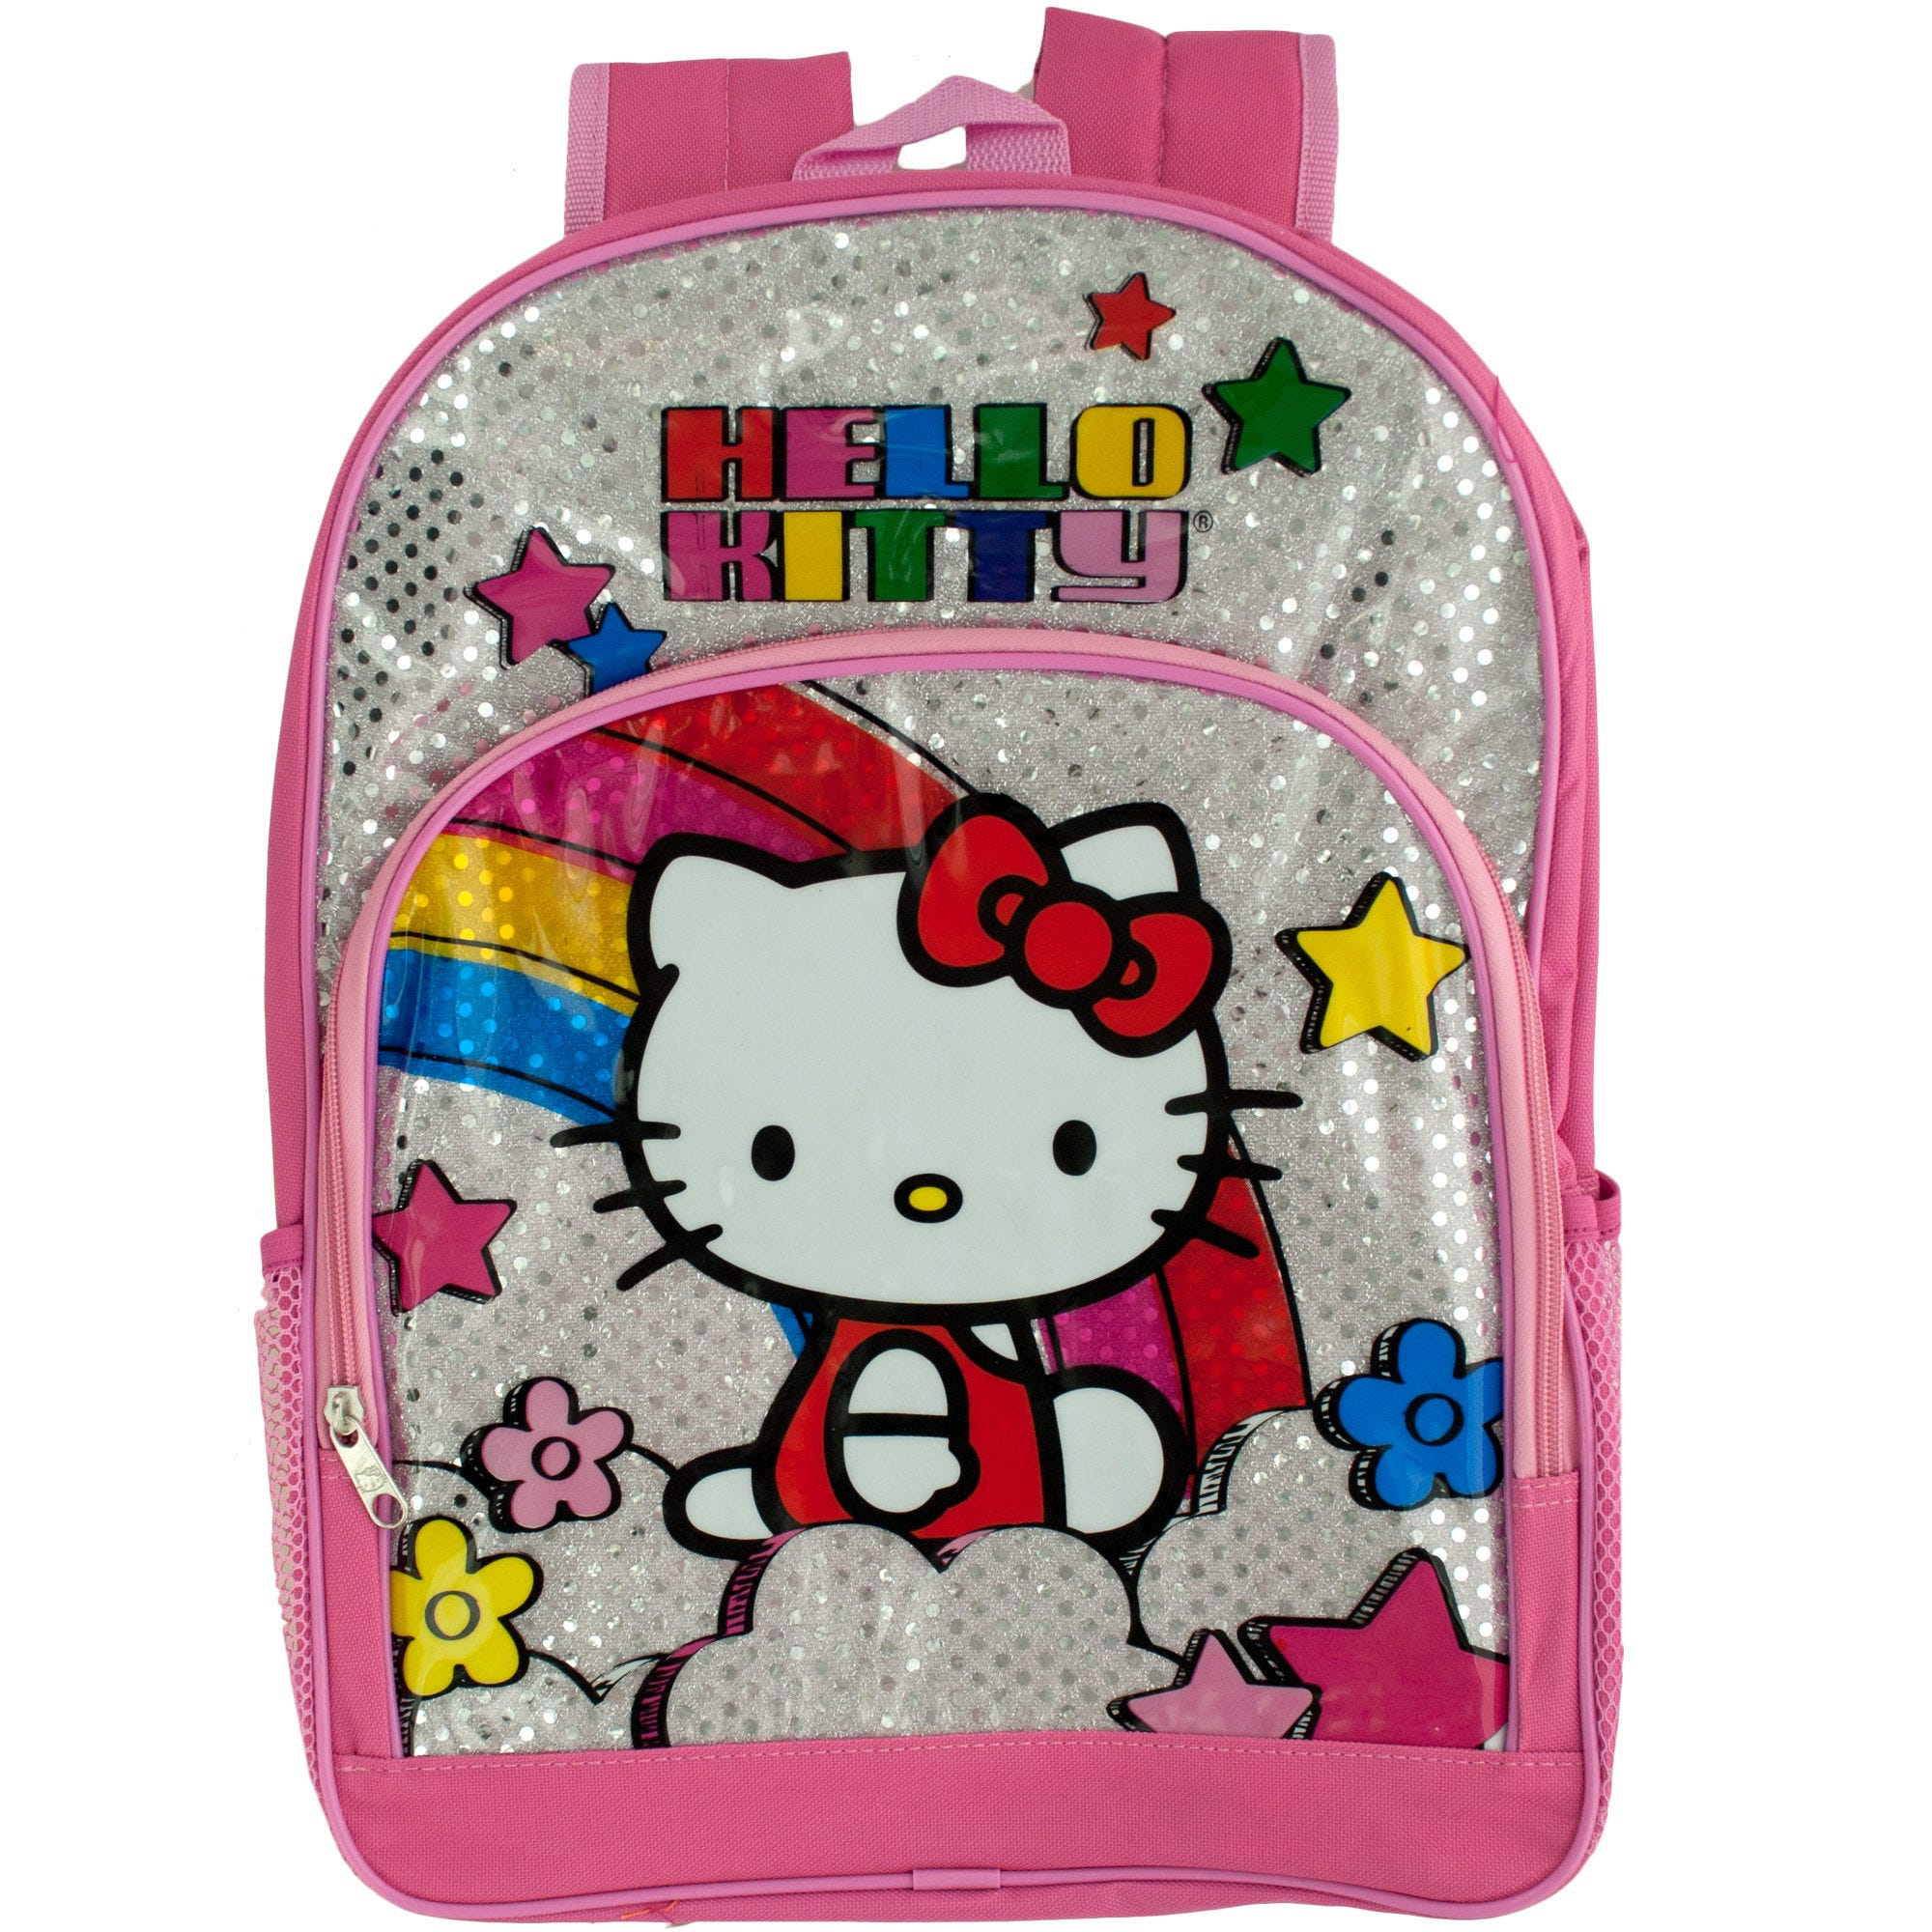 Pink & Silver HELLO KITTY Rainbow Backpack- Qty 4